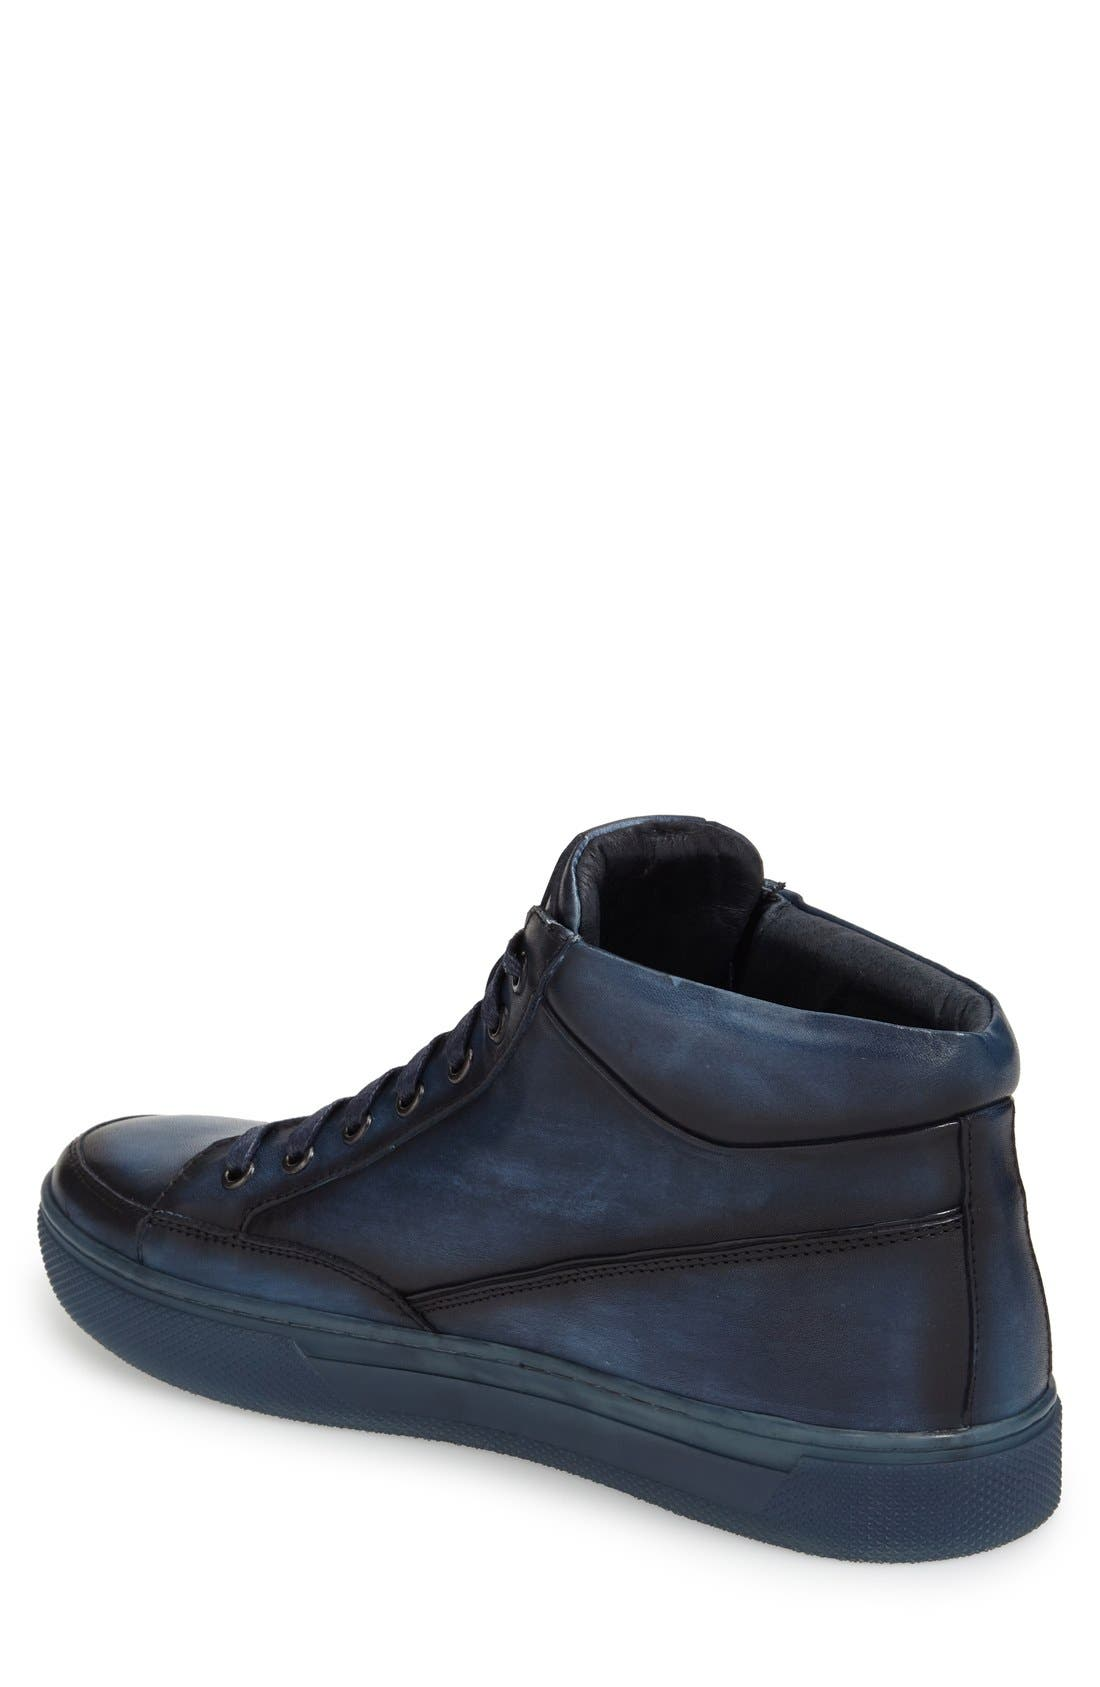 'Strickland' Sneaker,                             Alternate thumbnail 2, color,                             NAVY LEATHER